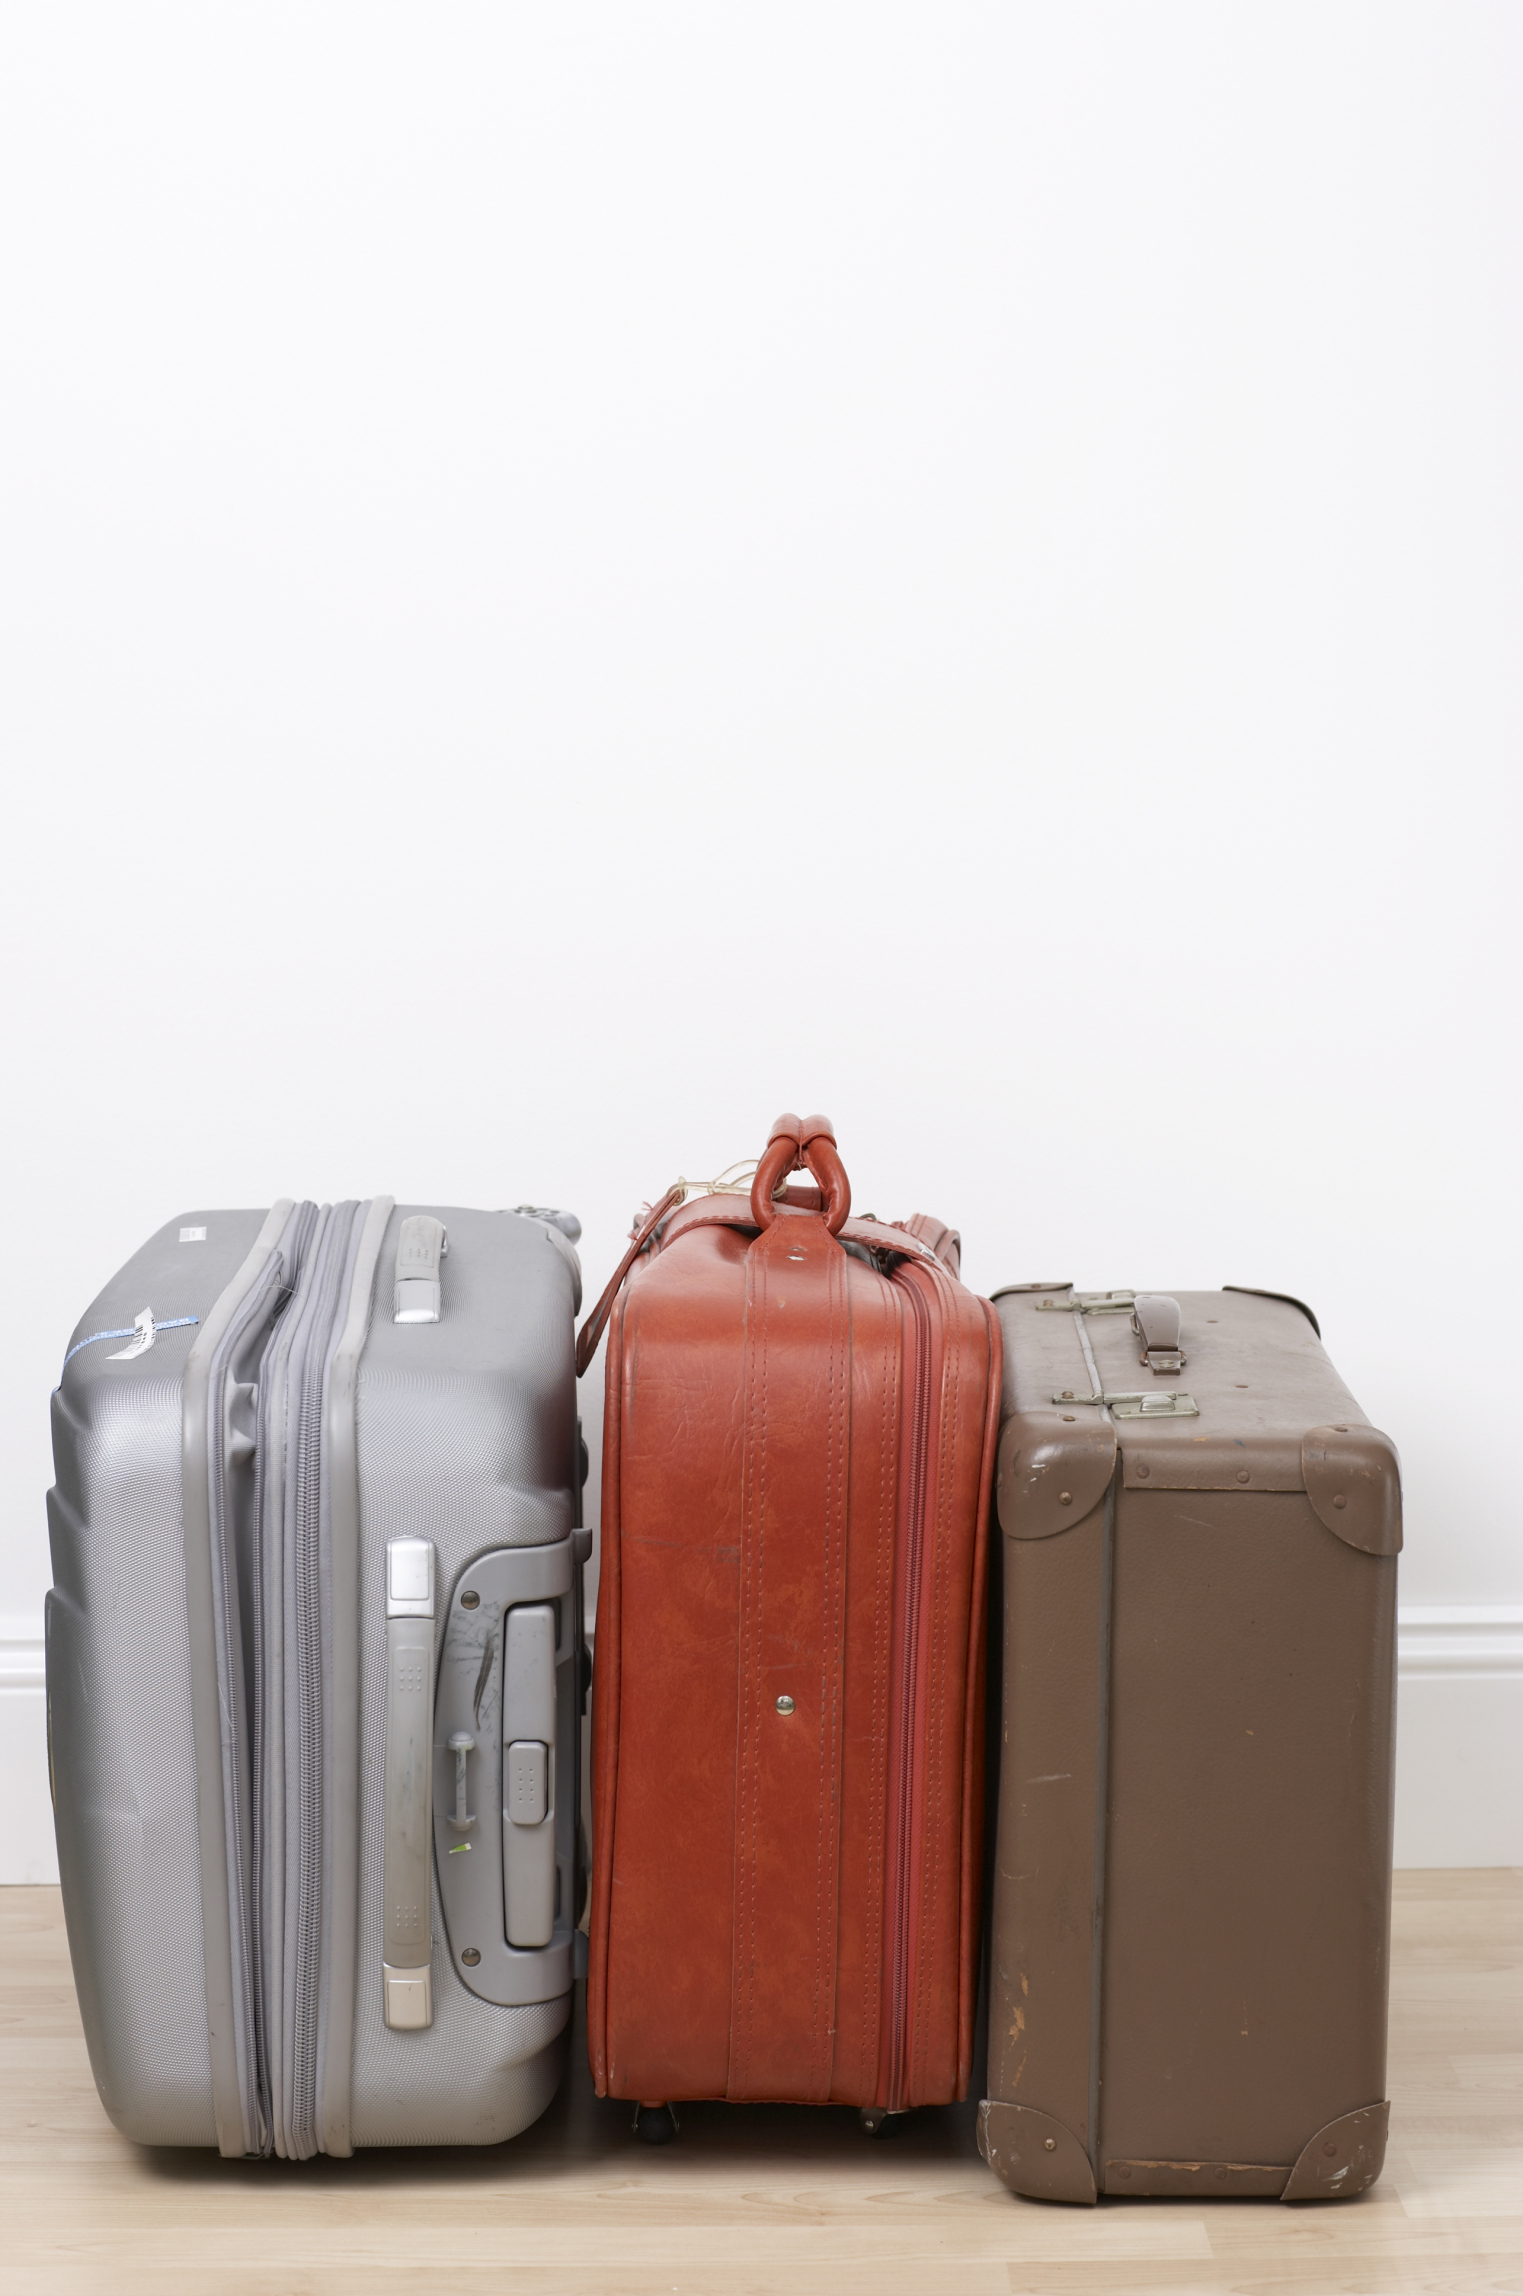 How Much Does United Charge For Overweight Bags